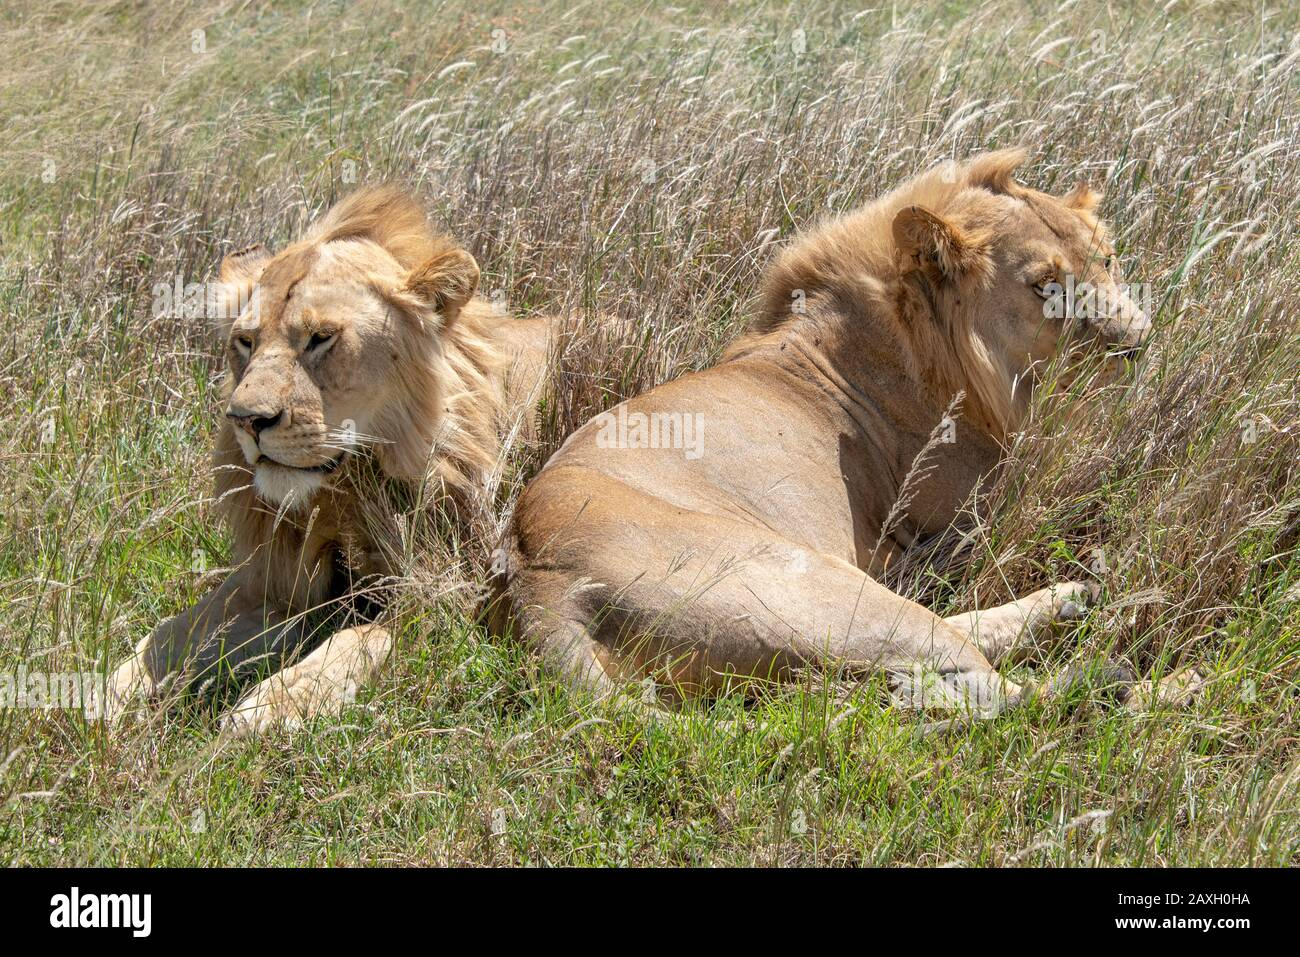 This handsome pair of young male Lions were happily resting in the midday sun. Stock Photo